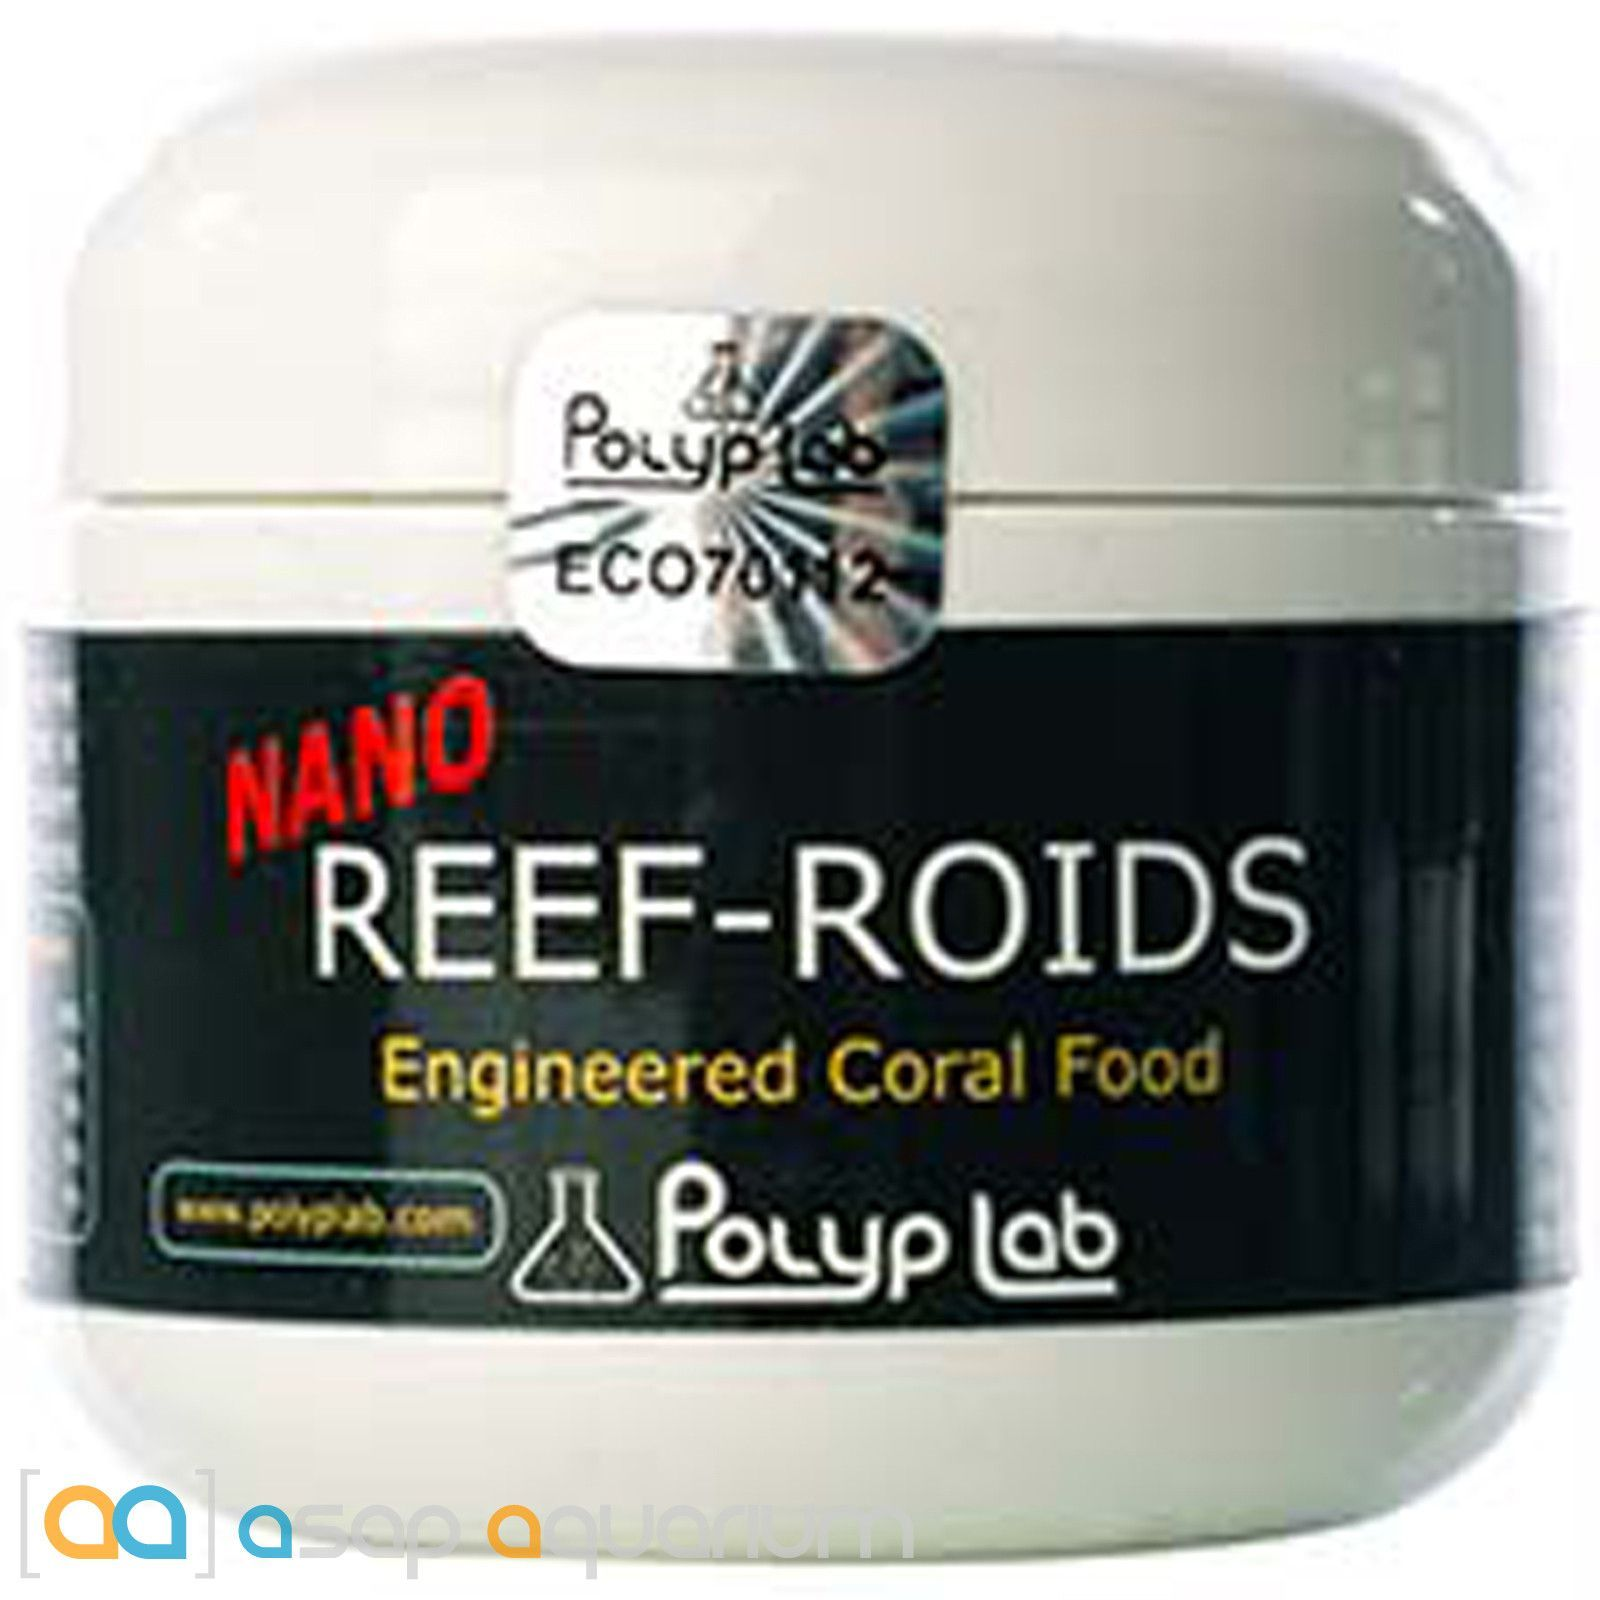 Polyp Lab Nano Reef Roids Coral Food 2 oz Planktonic Coral Food